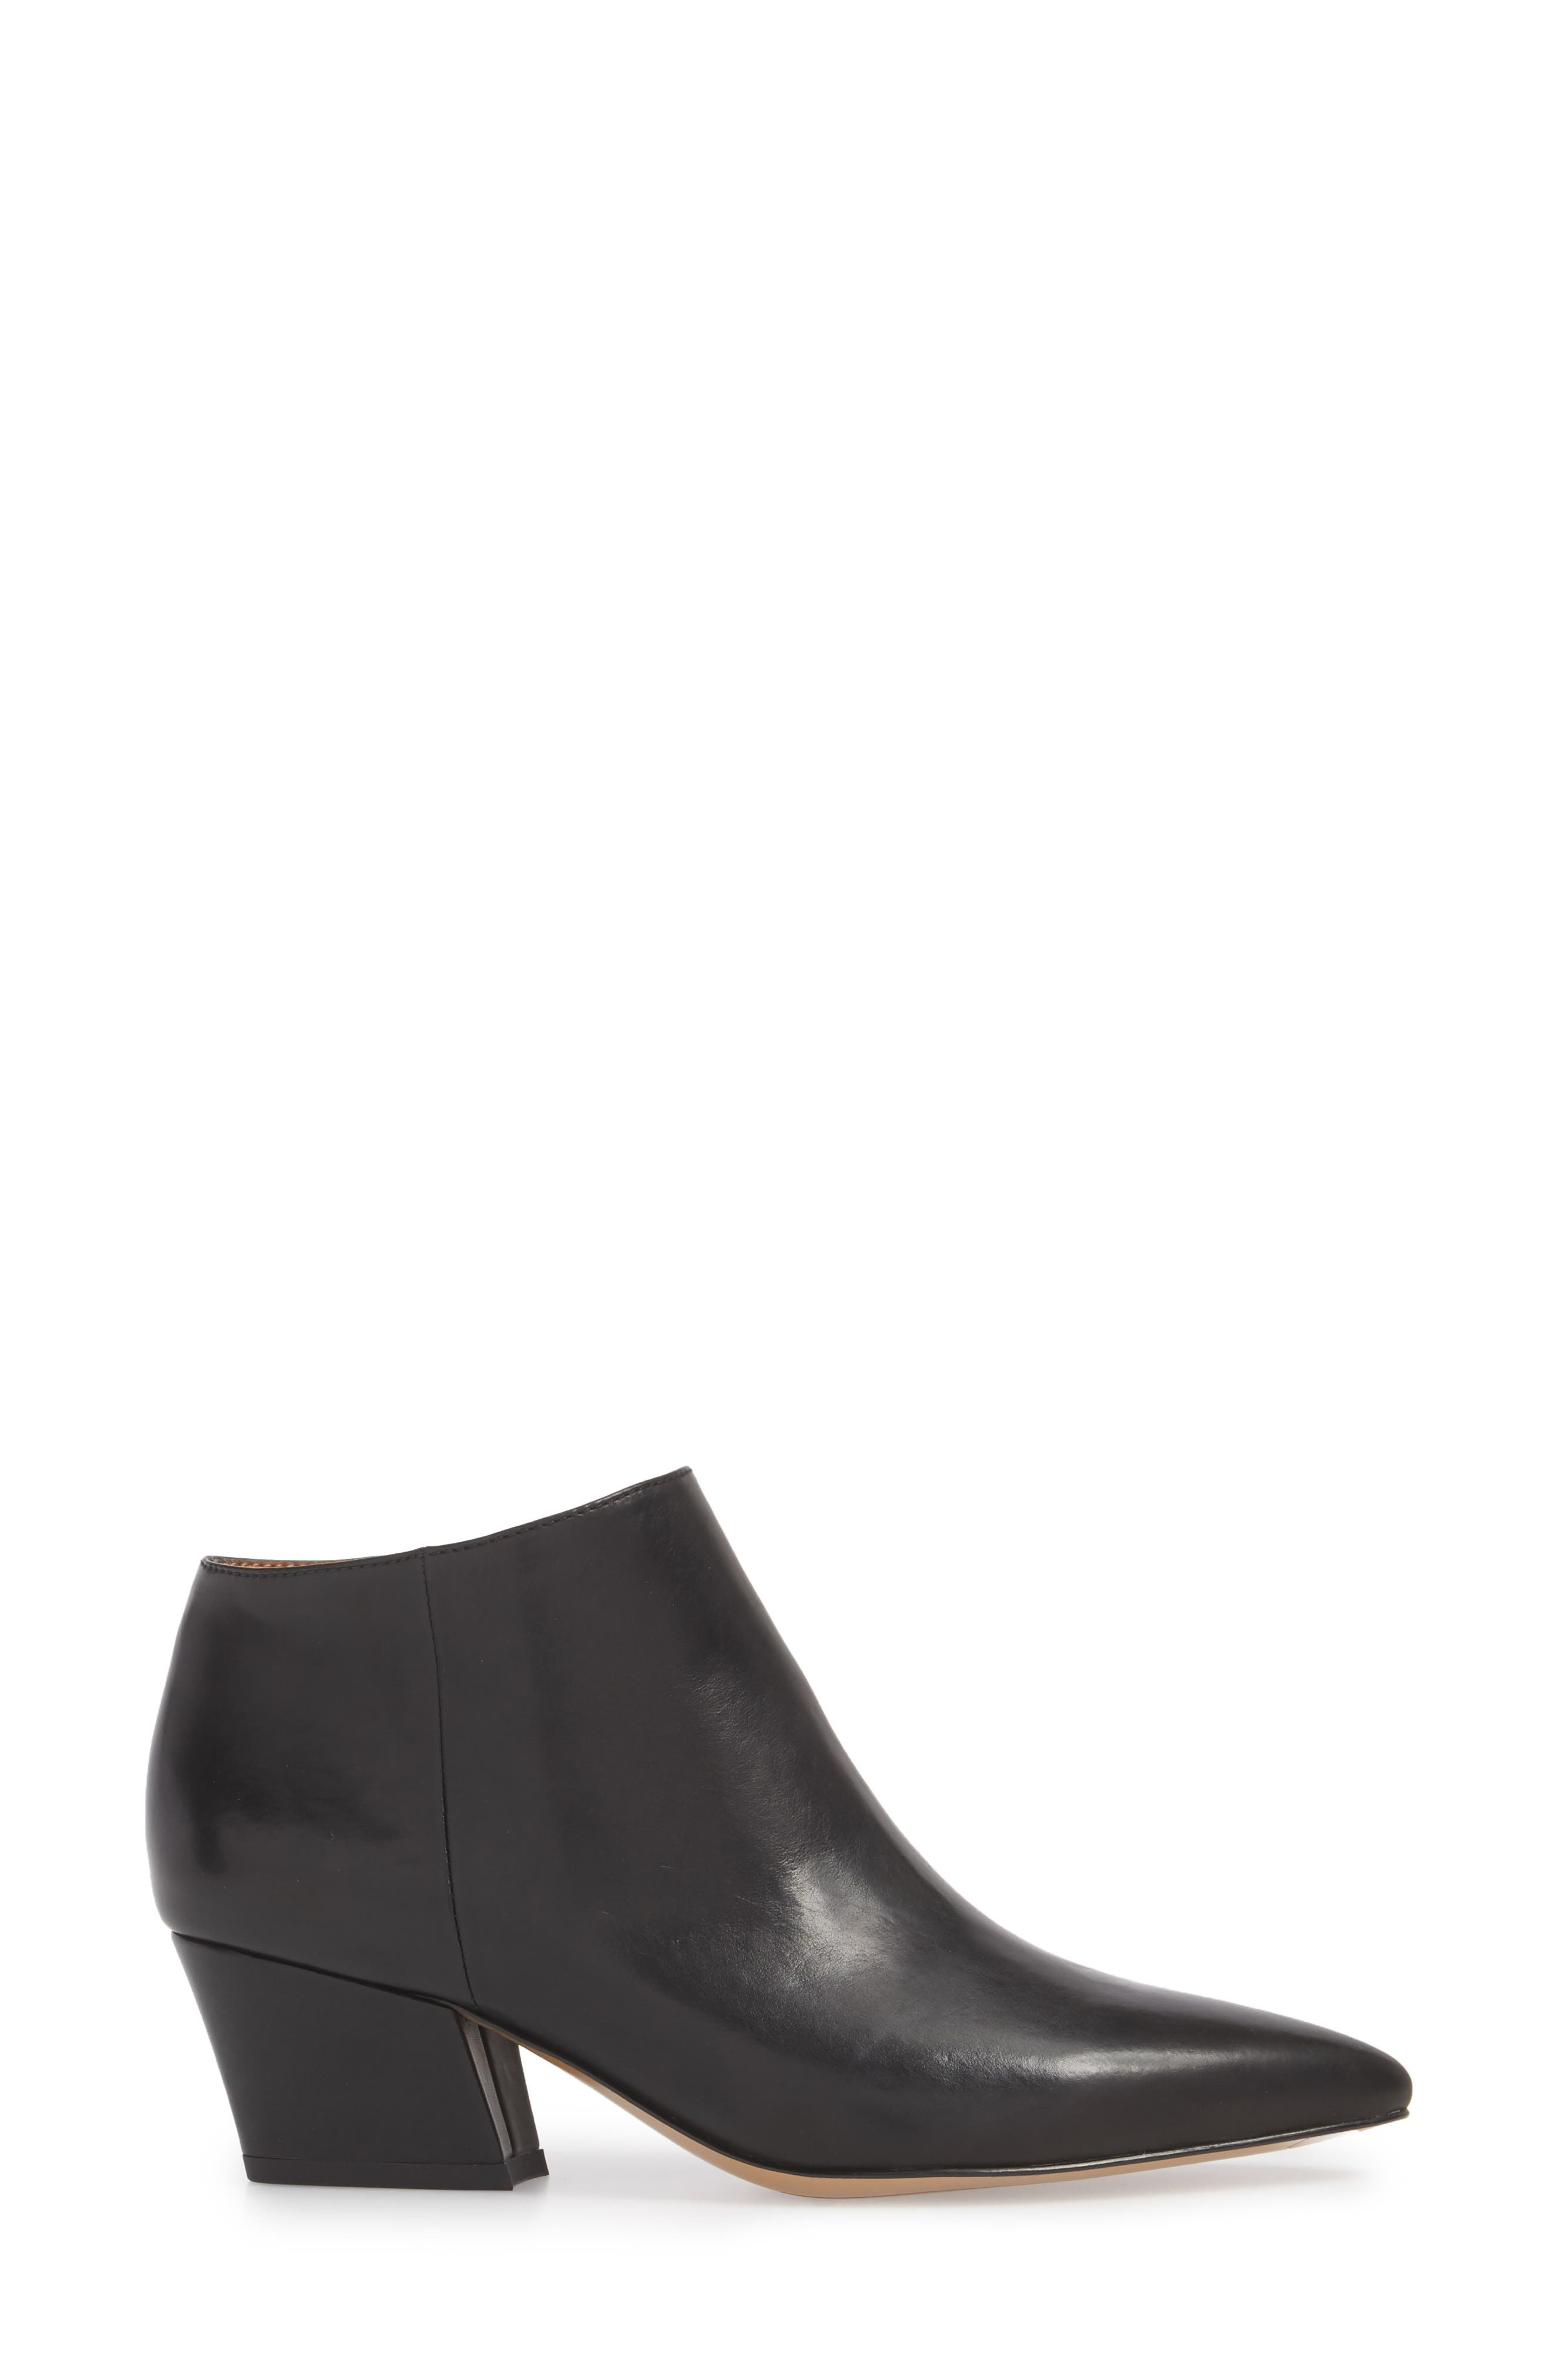 Lowe Bootie,                             Alternate thumbnail 3, color,                             BLACK LEATHER